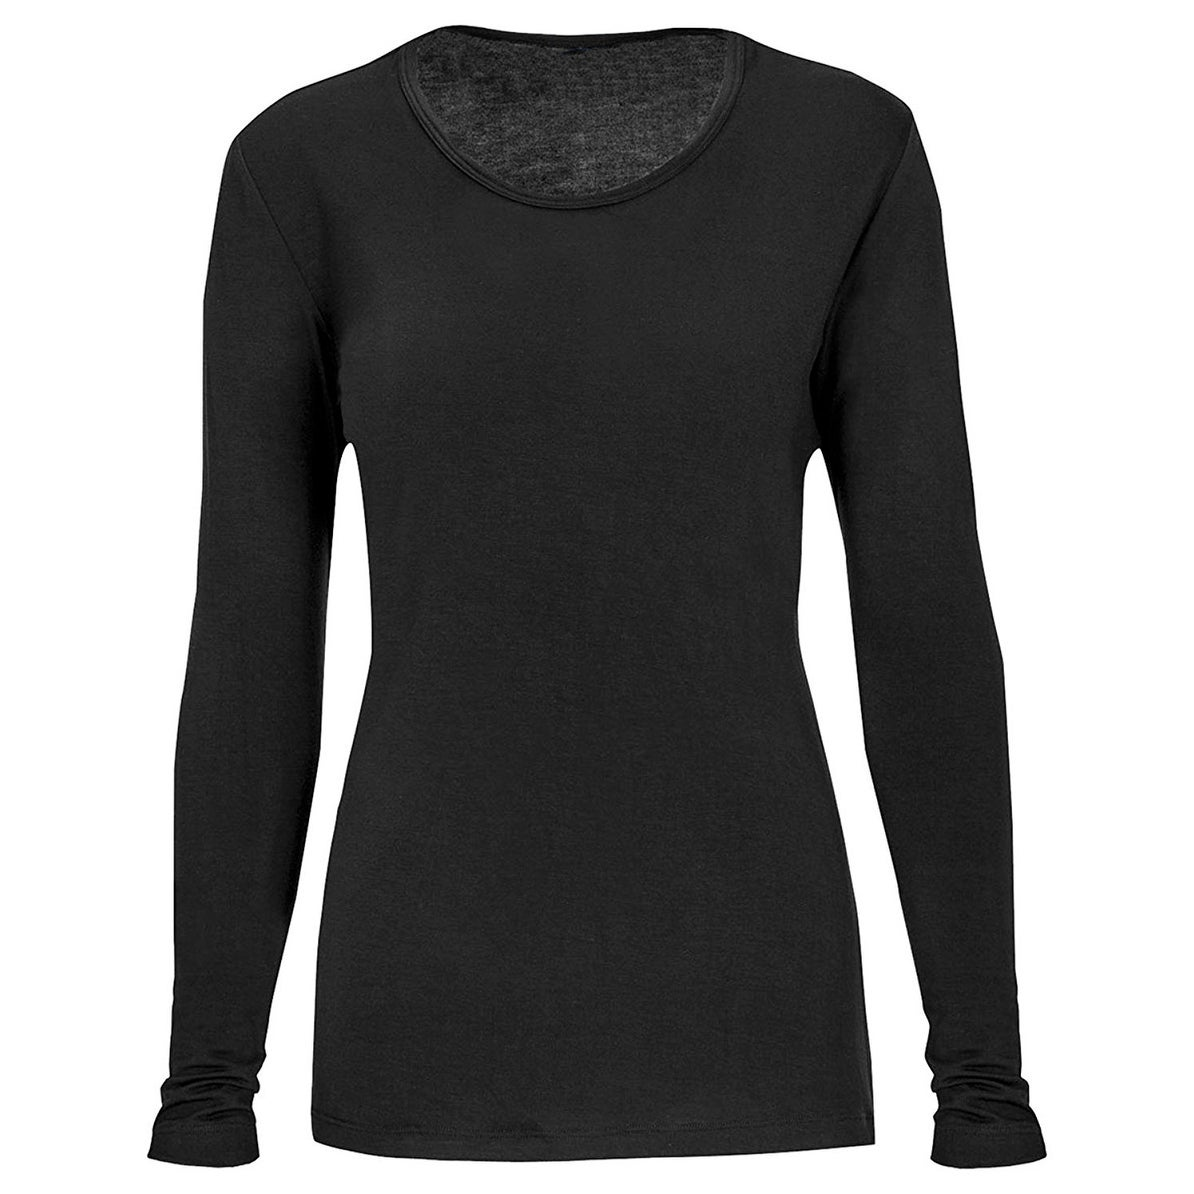 403db88716e Shop T Flex Womens Comfort Long Sleeve T-Shirt Underscrub Tee Layering Shirt  Uniform - Free Shipping On Orders Over $45 - Overstock - 21706735